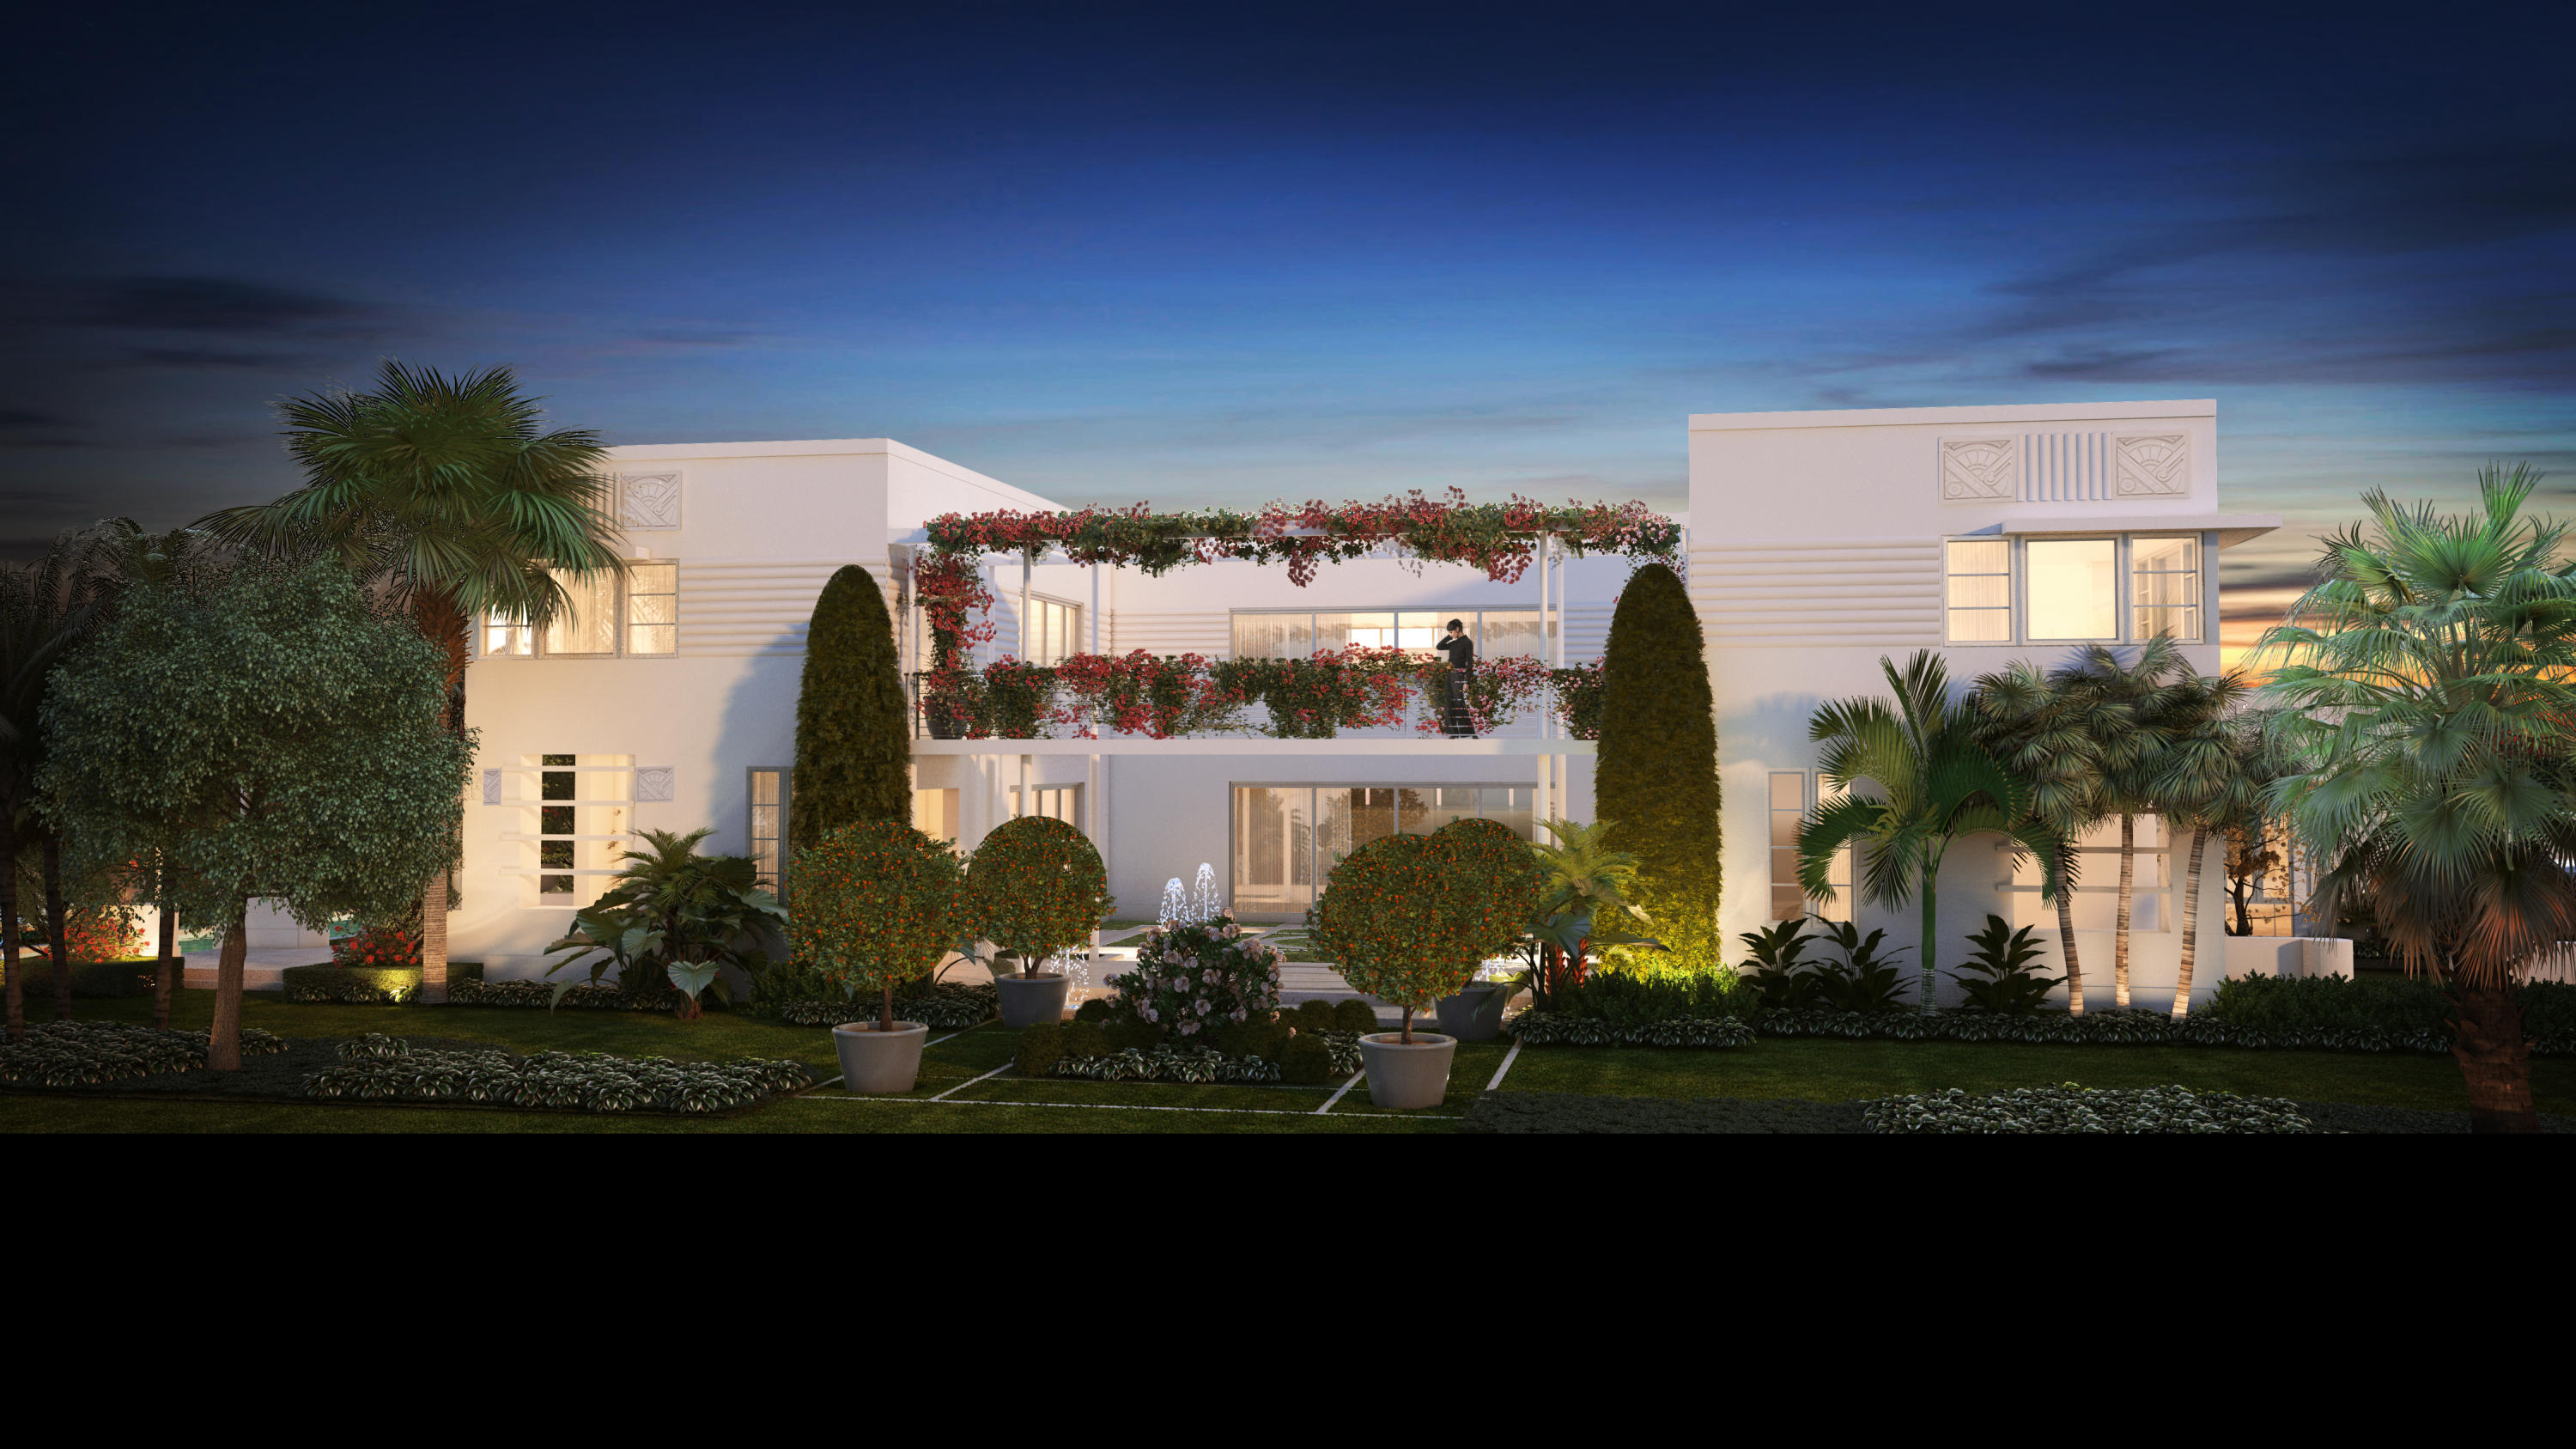 New Home for sale at 111 Atlantic Avenue in Palm Beach